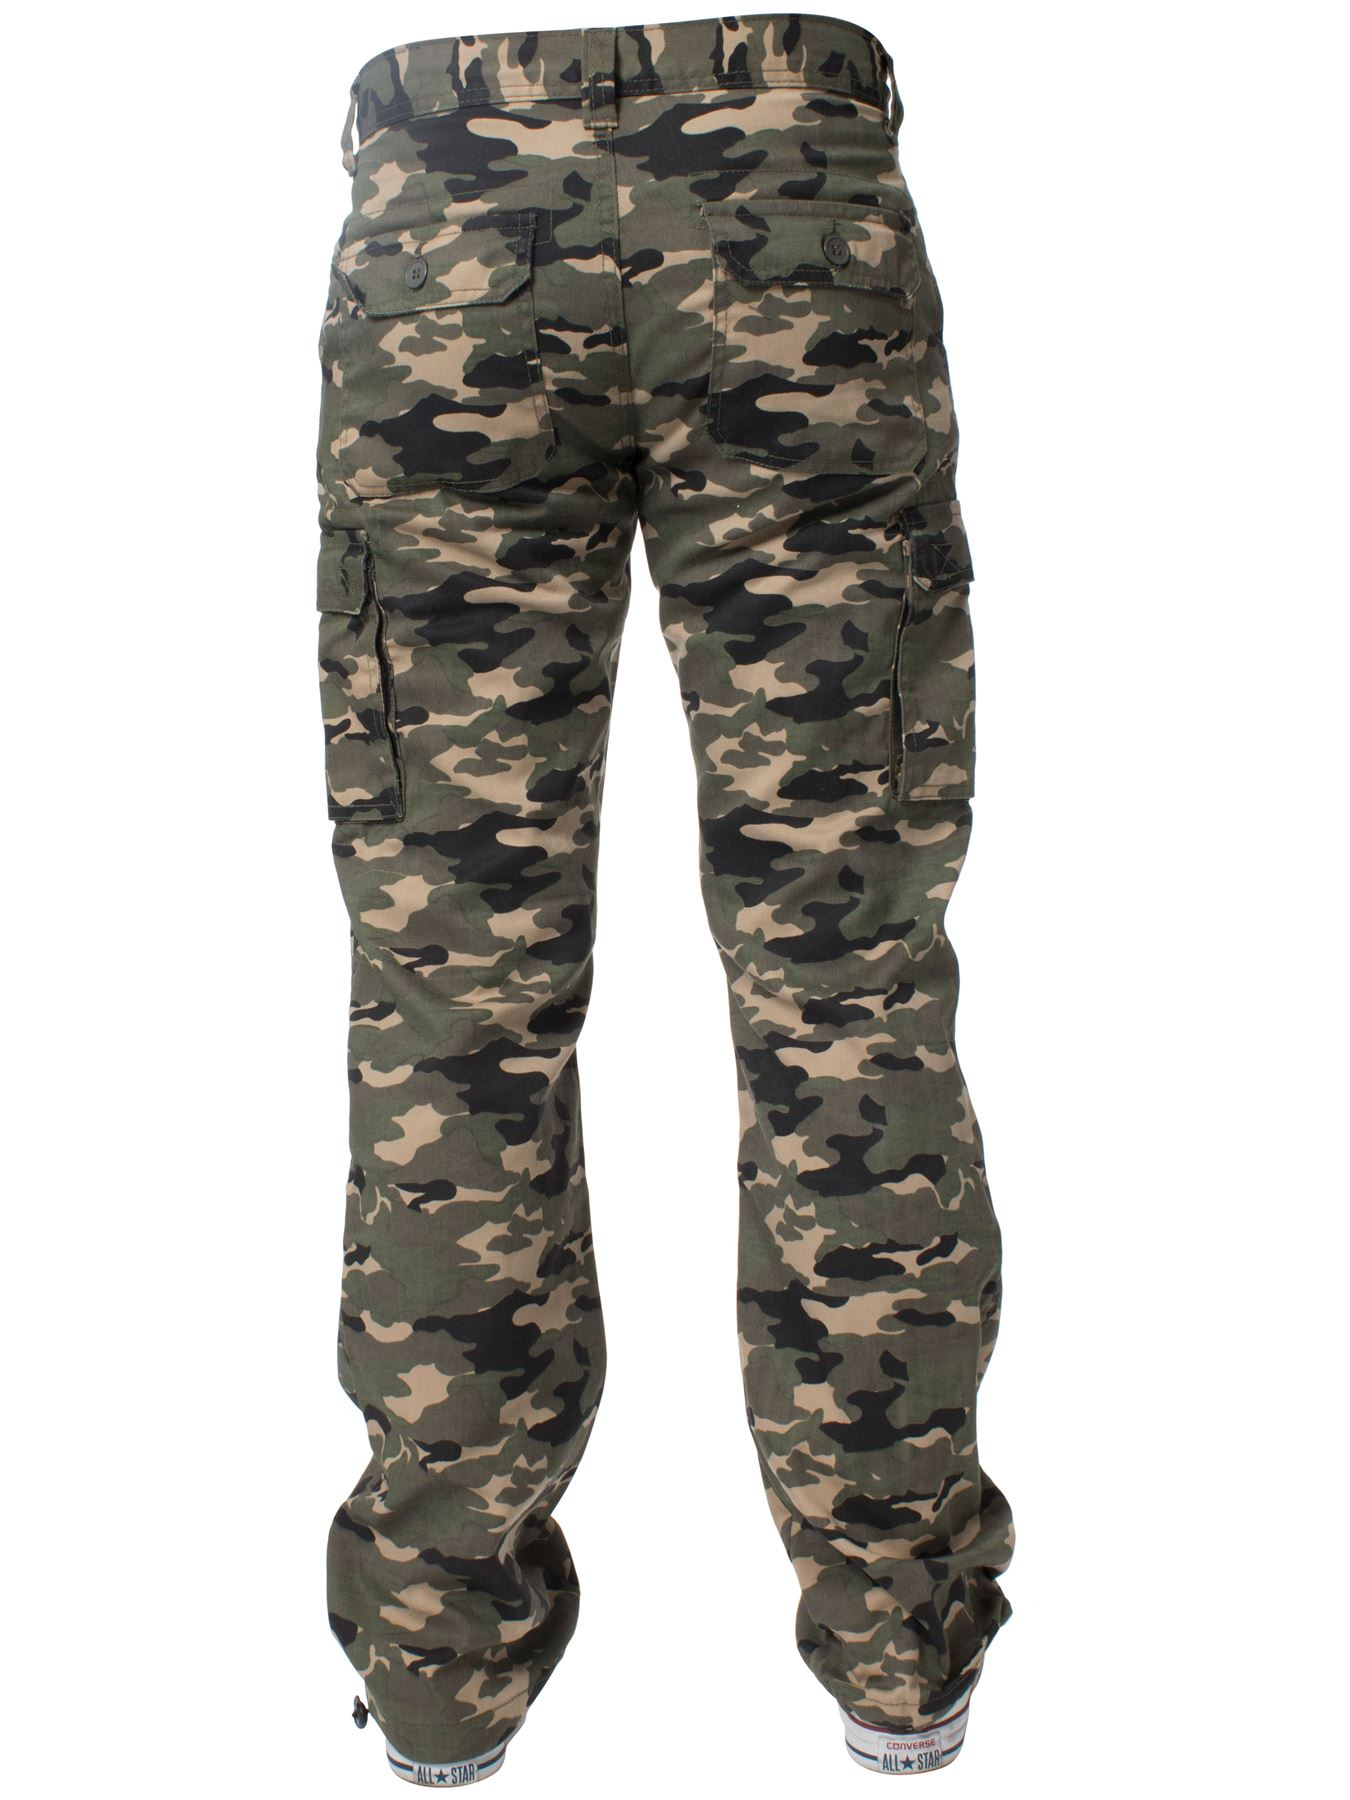 Kruze-Mens-Military-Combat-Trousers-Camouflage-Cargo-Camo-Army-Casual-Work-Pants thumbnail 19